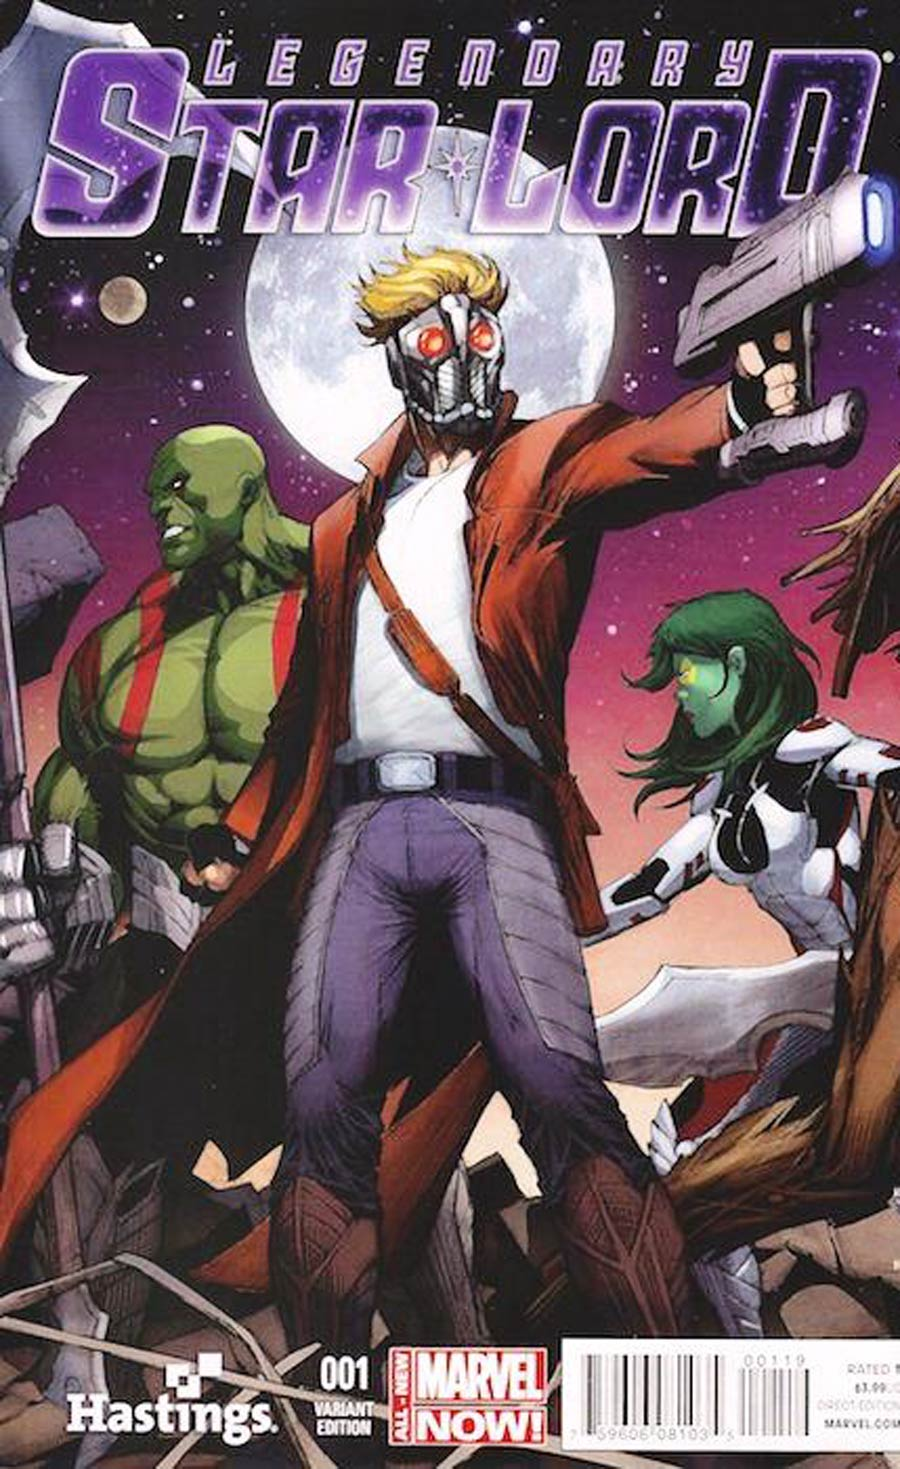 Legendary Star-Lord #1 Cover N Hastings Variant Cover